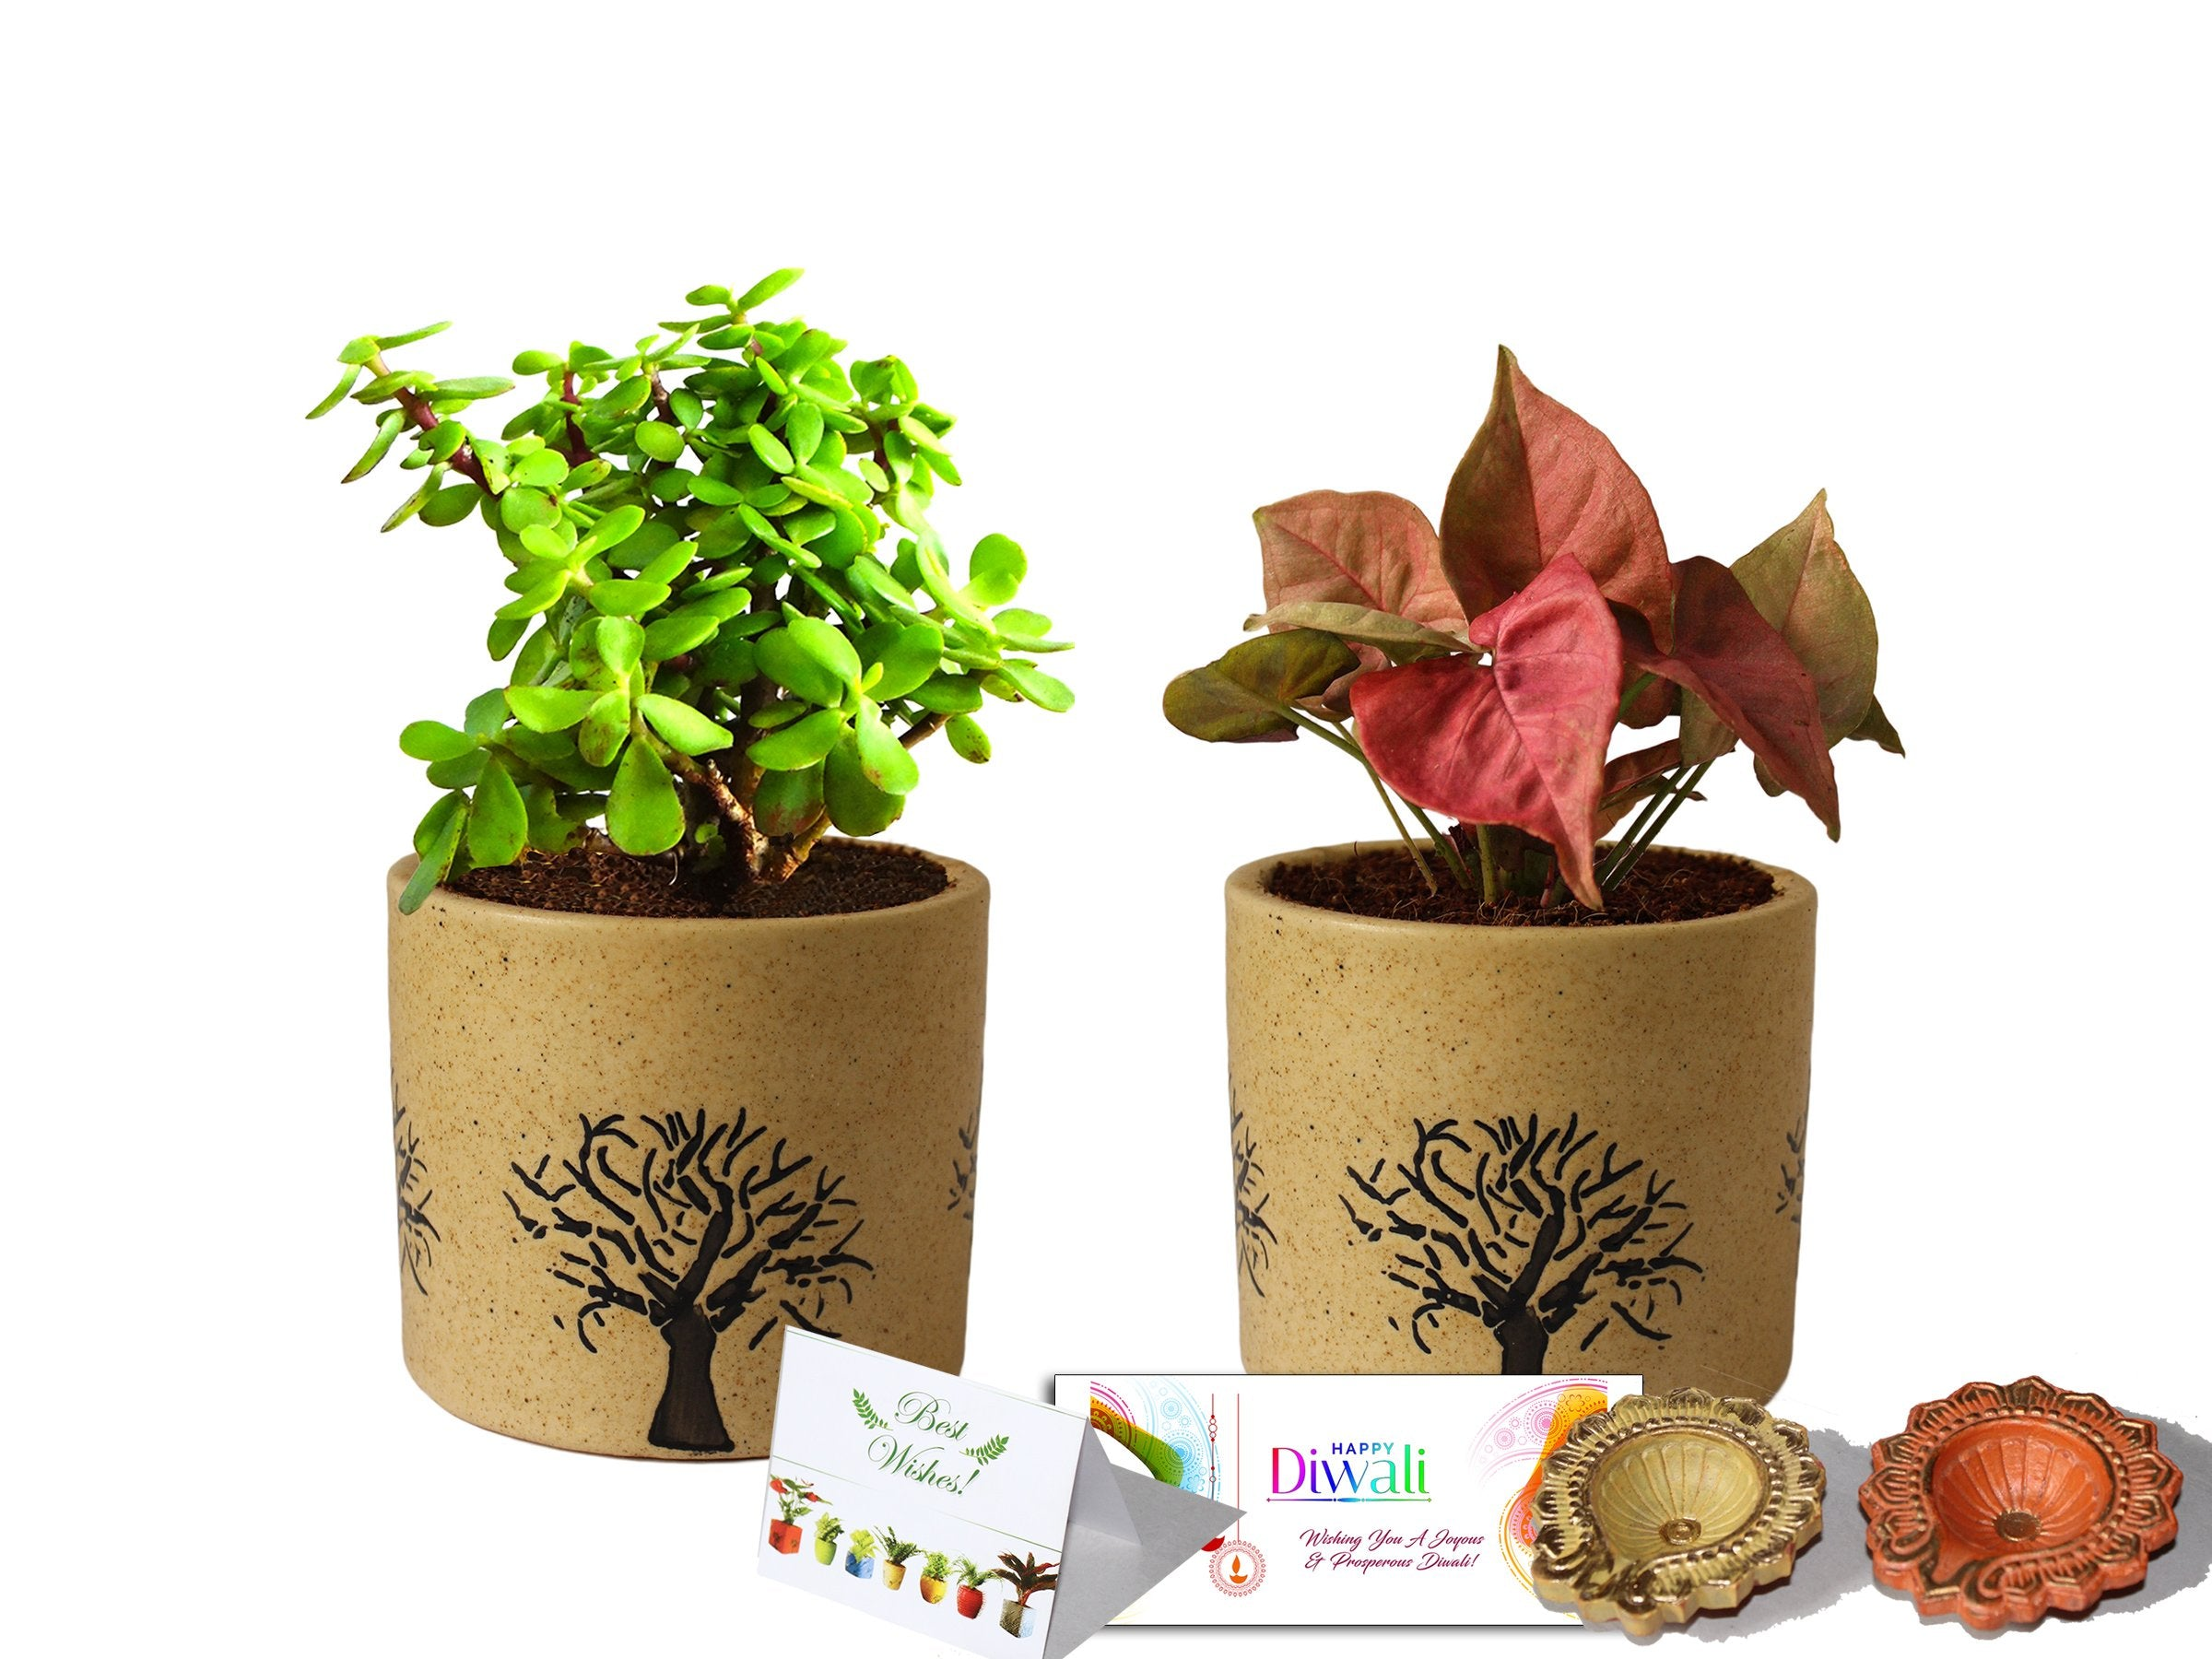 Rolling Nature Diwali Gift Combo of Good Luck Air Purifying Jade and Pink Syngonium Plant in Brown Barrel Aroez Ceramic Pot